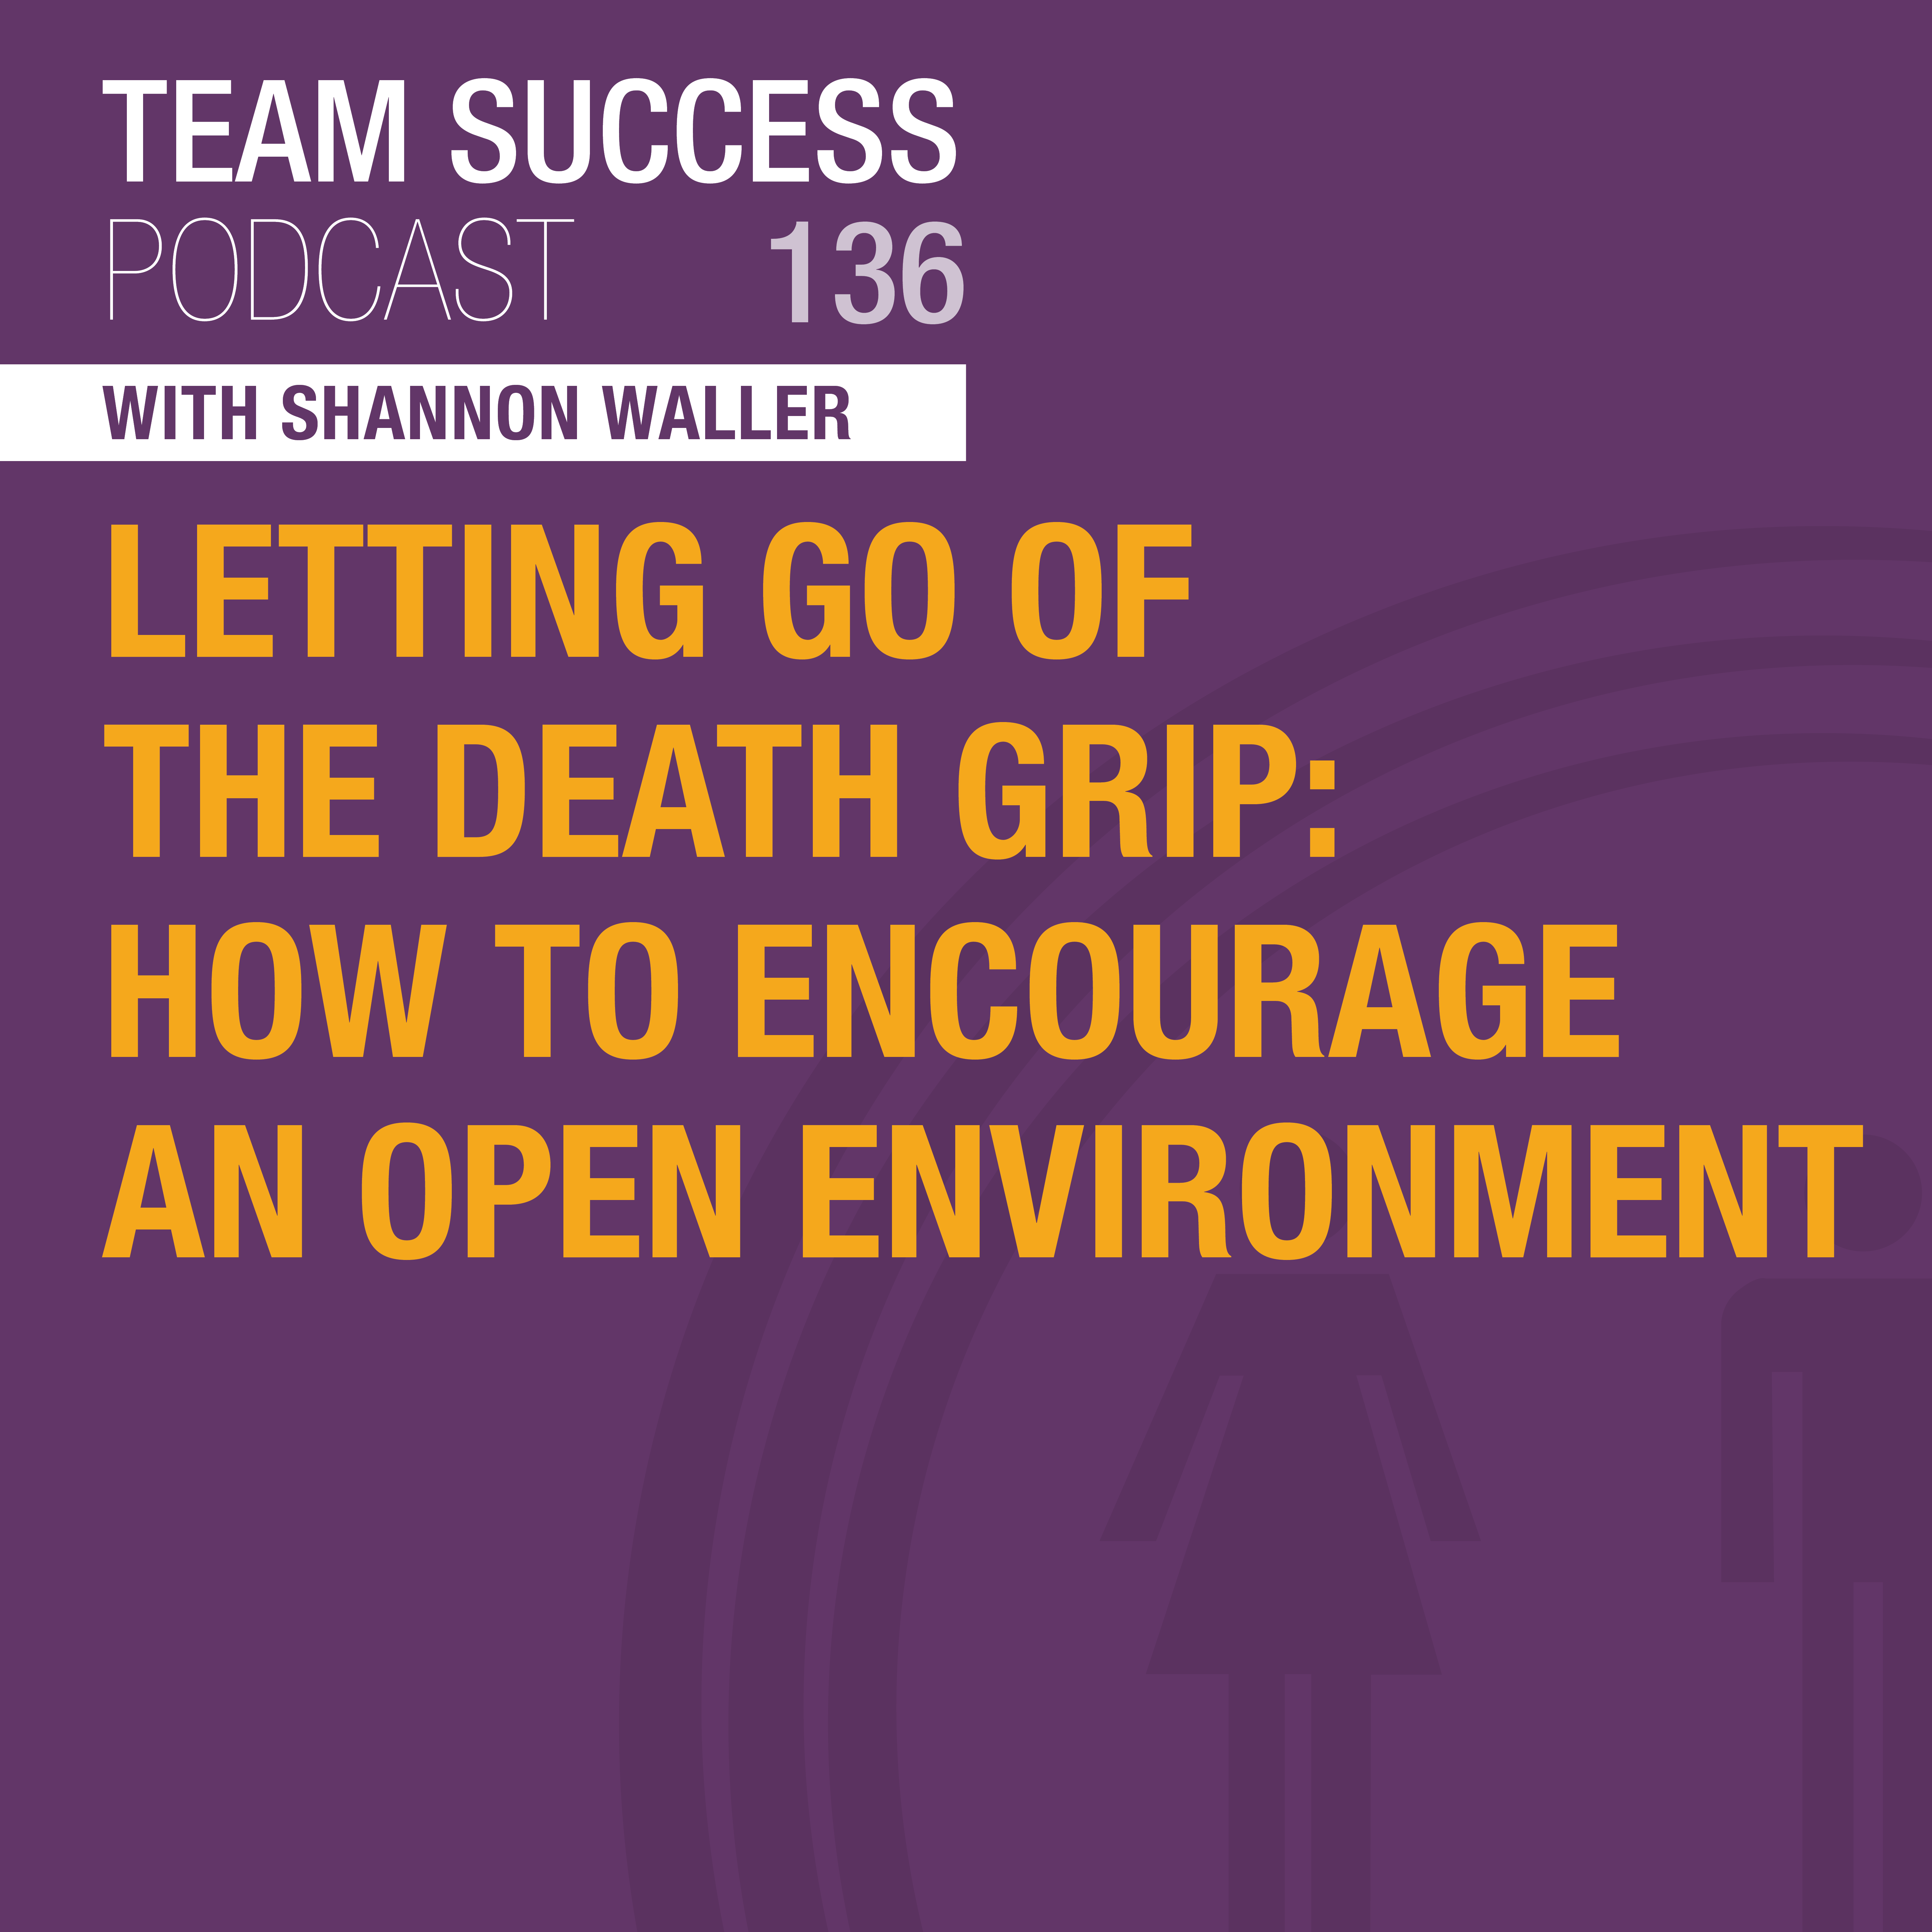 Letting Go Of The Death Grip: How To Encourage An Open Environment